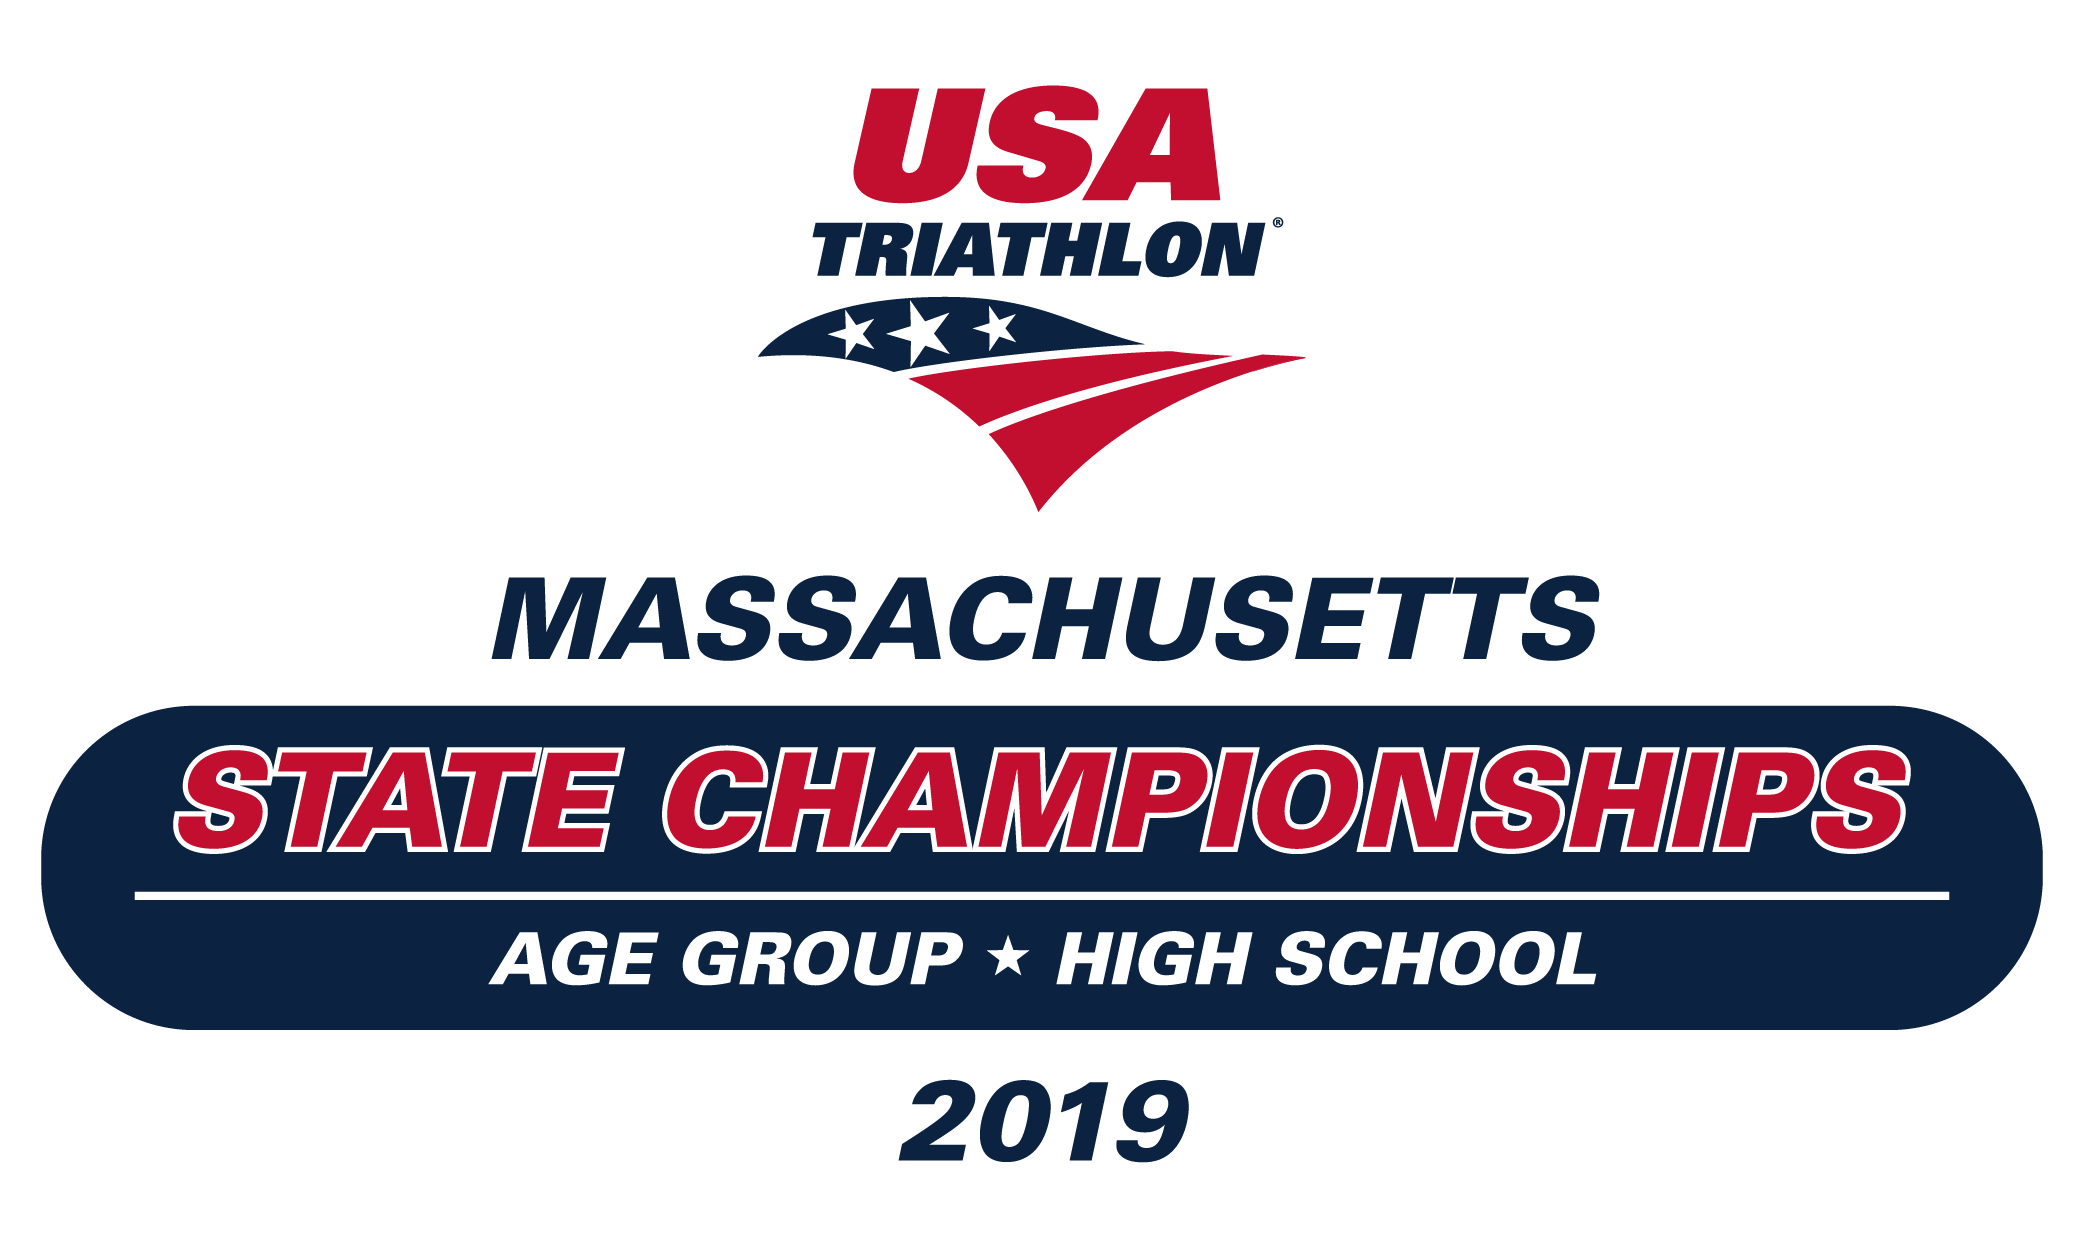 Hyannis 1 Triathlon is the Massachuesetts USA Triathlon State Championships on June 15, 2019